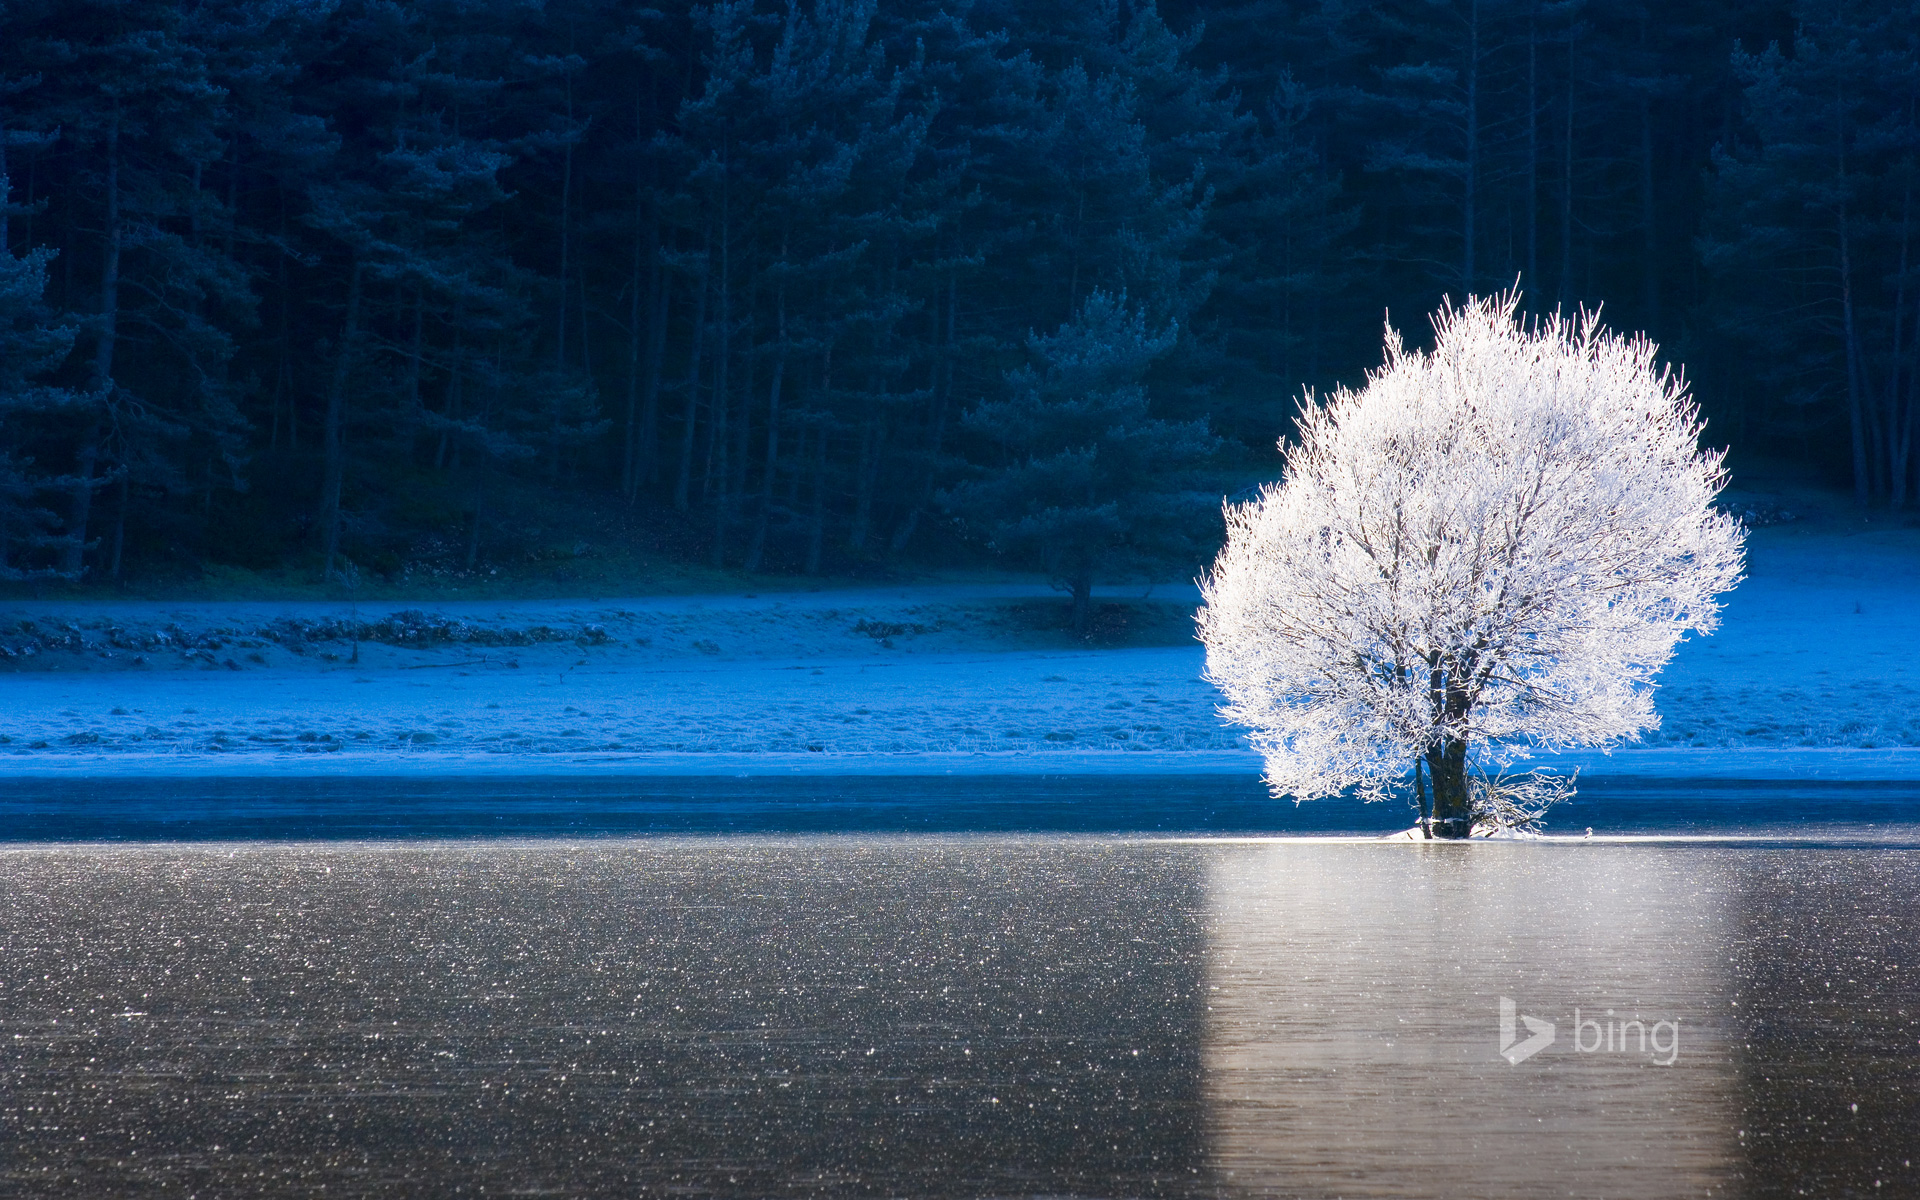 Frozen lake and frost-covered tree in Caille, Alpes-Maritimes, Provence-Alpes-Côte d'Azur, France